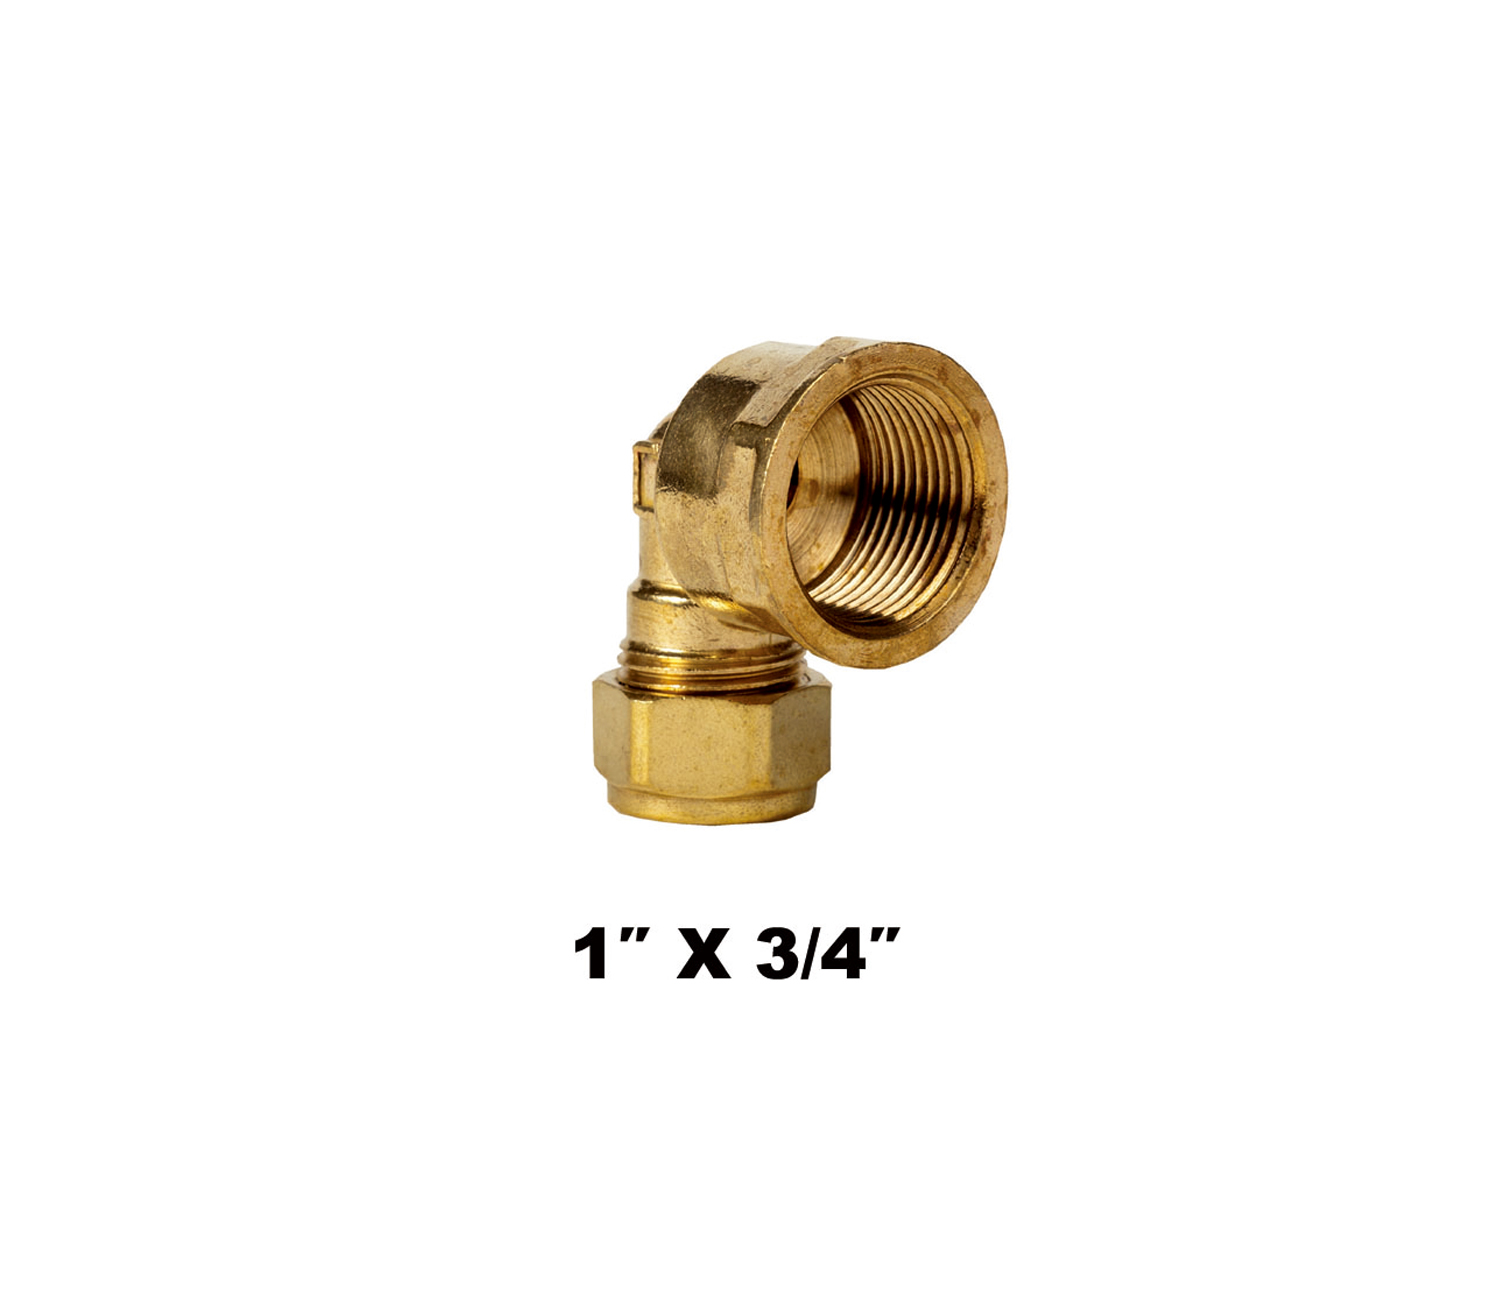 Compression Elbow FI X C 1″ X 3/4″ (31732)